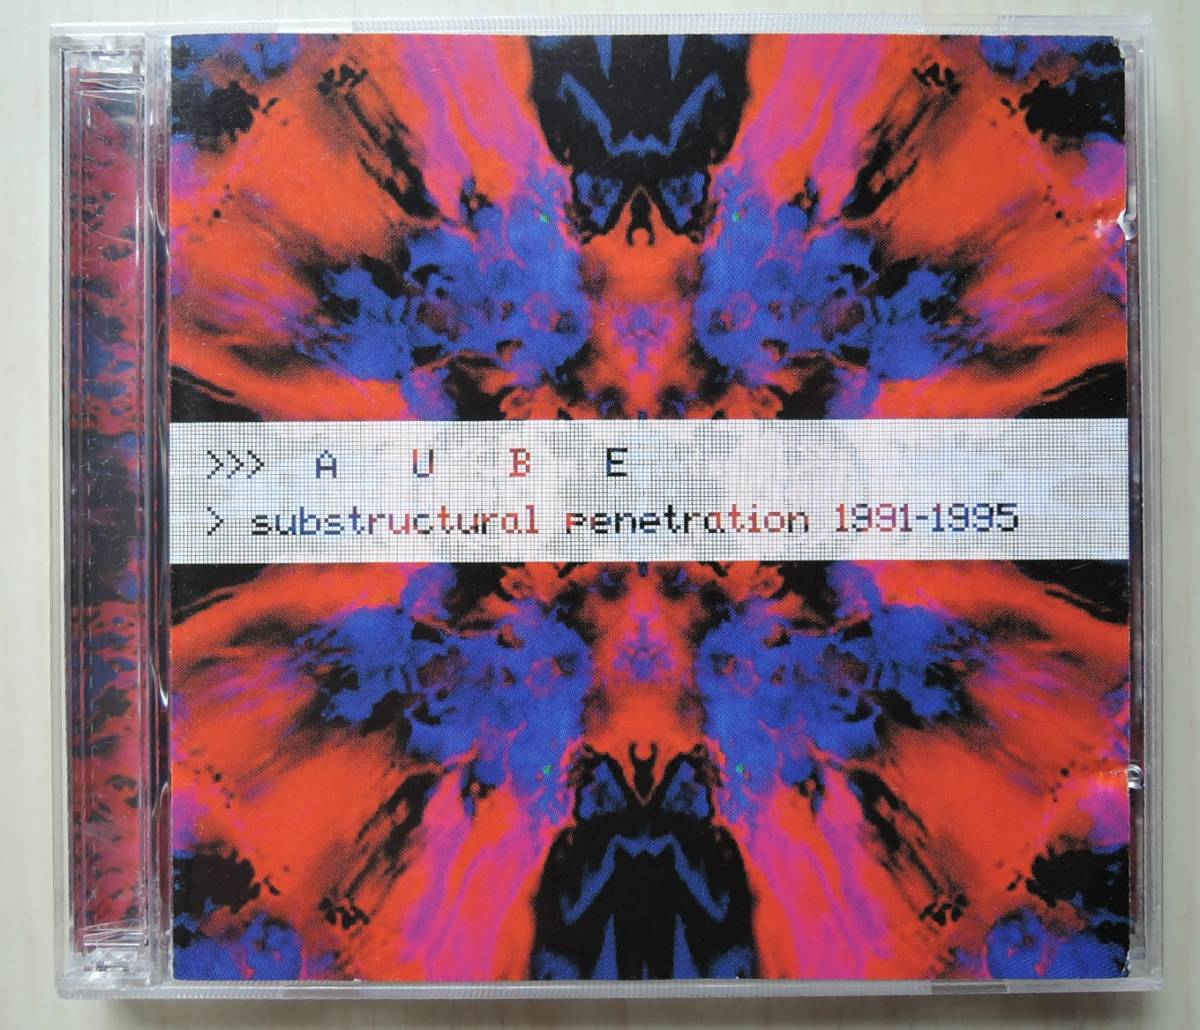 CD■ AUBE ■ SUBSTRUCTURAL PENETRATION 1991-1995 ■ 輸入盤 ■_画像1